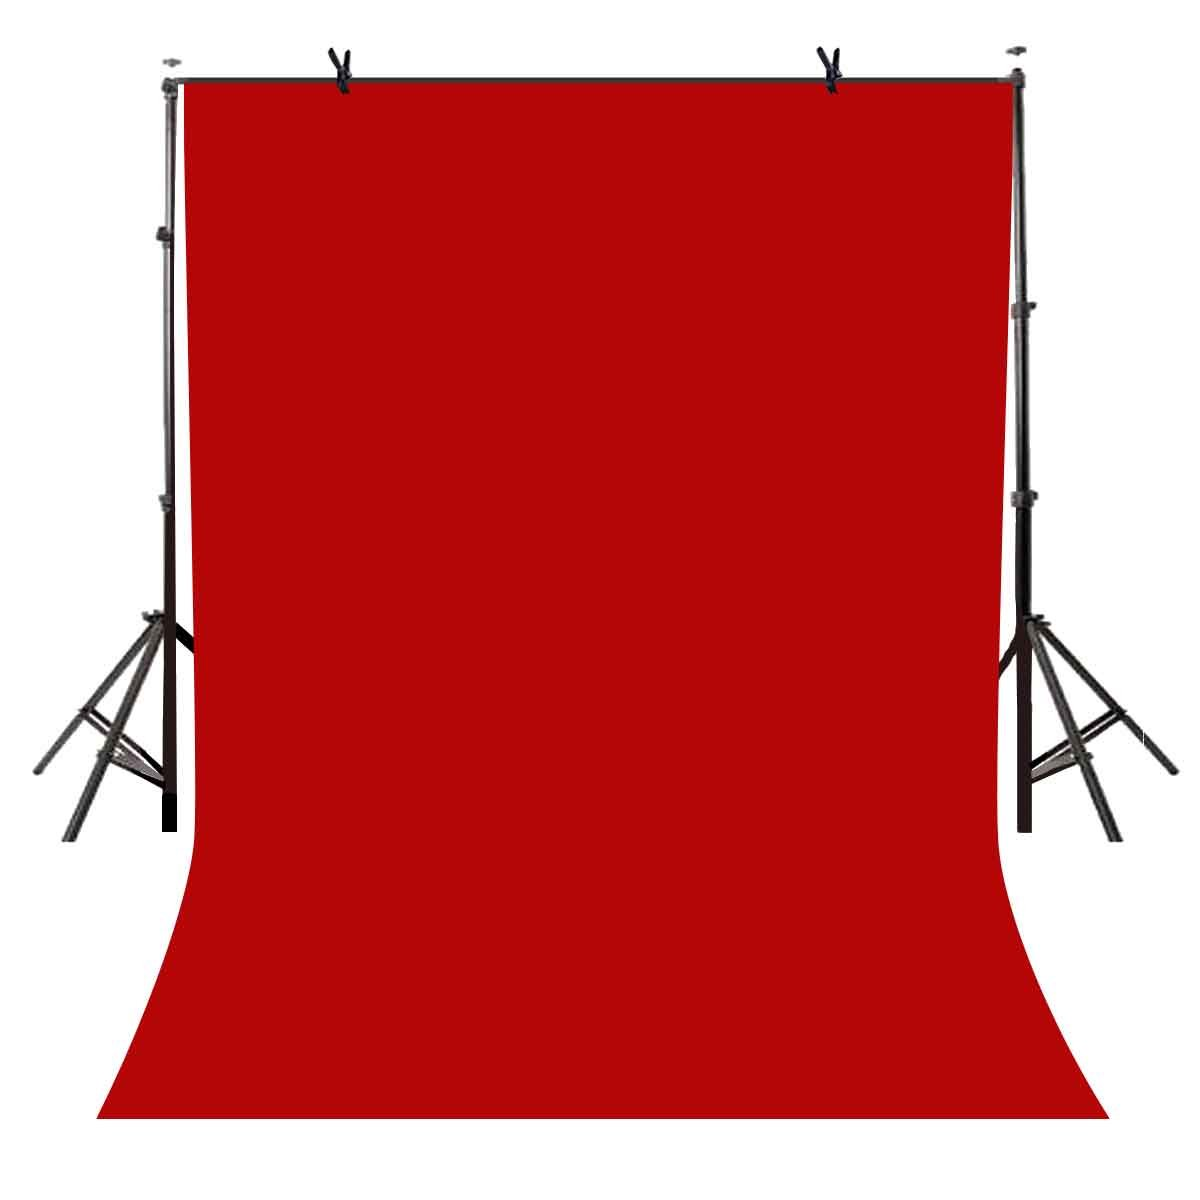 LYLYCTY 5x7ft Photography Studio Non-Woven Backdrop Bright Red Backdrop Solid Color Backdrop Simple Background LY092 by LYLYCTY